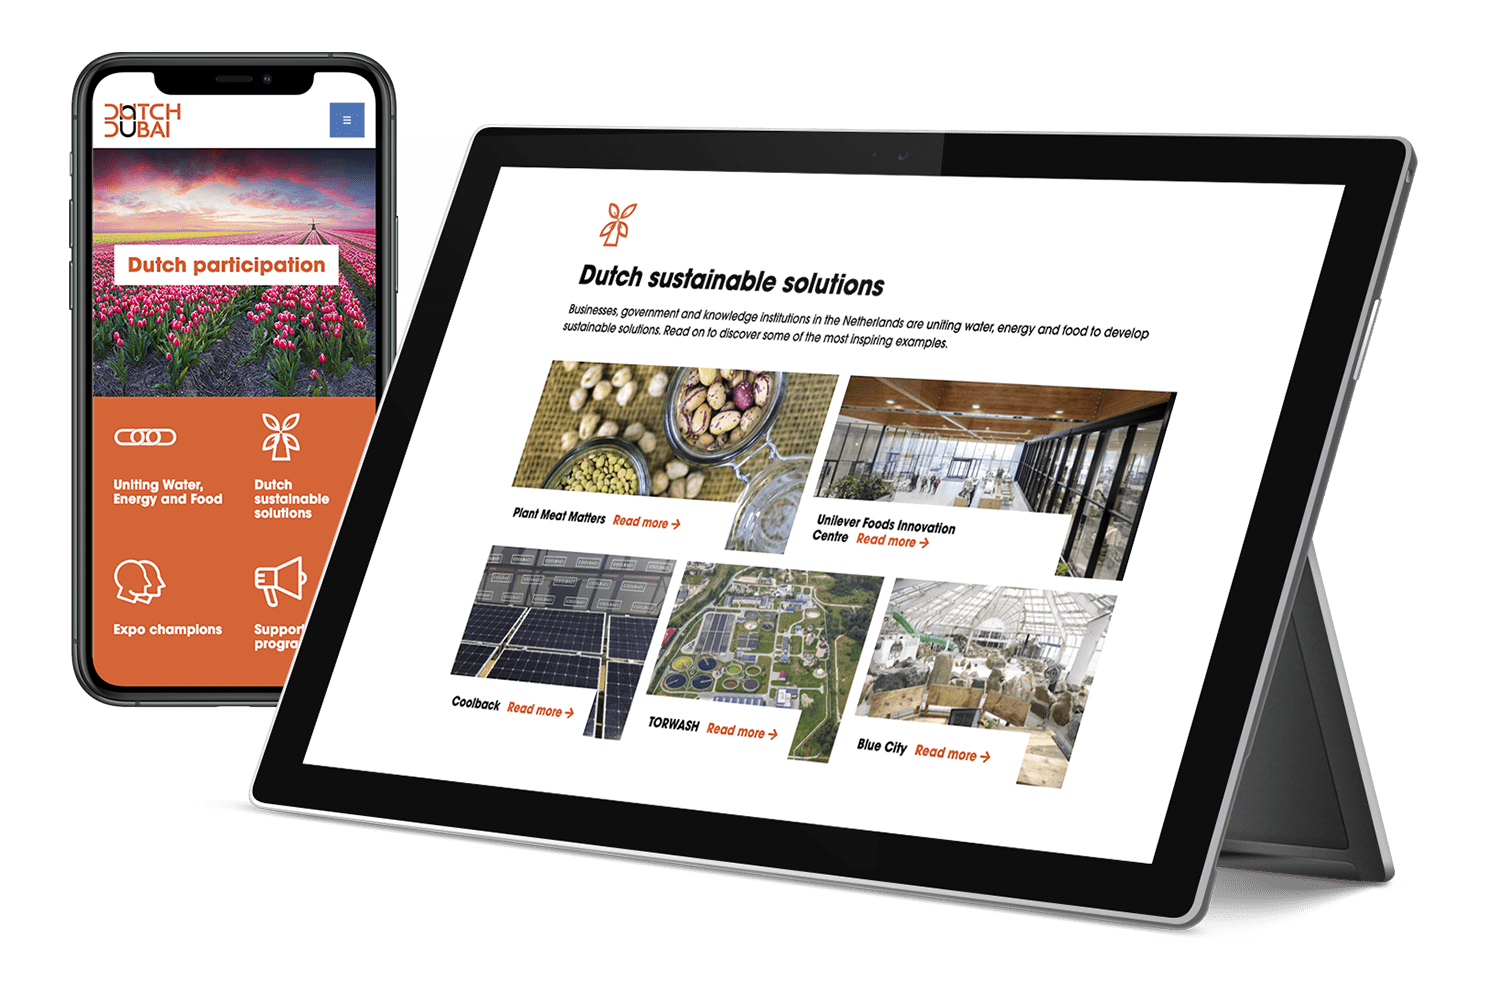 Fully responsive Dutch Dubai site shown on tablet and mobile phone